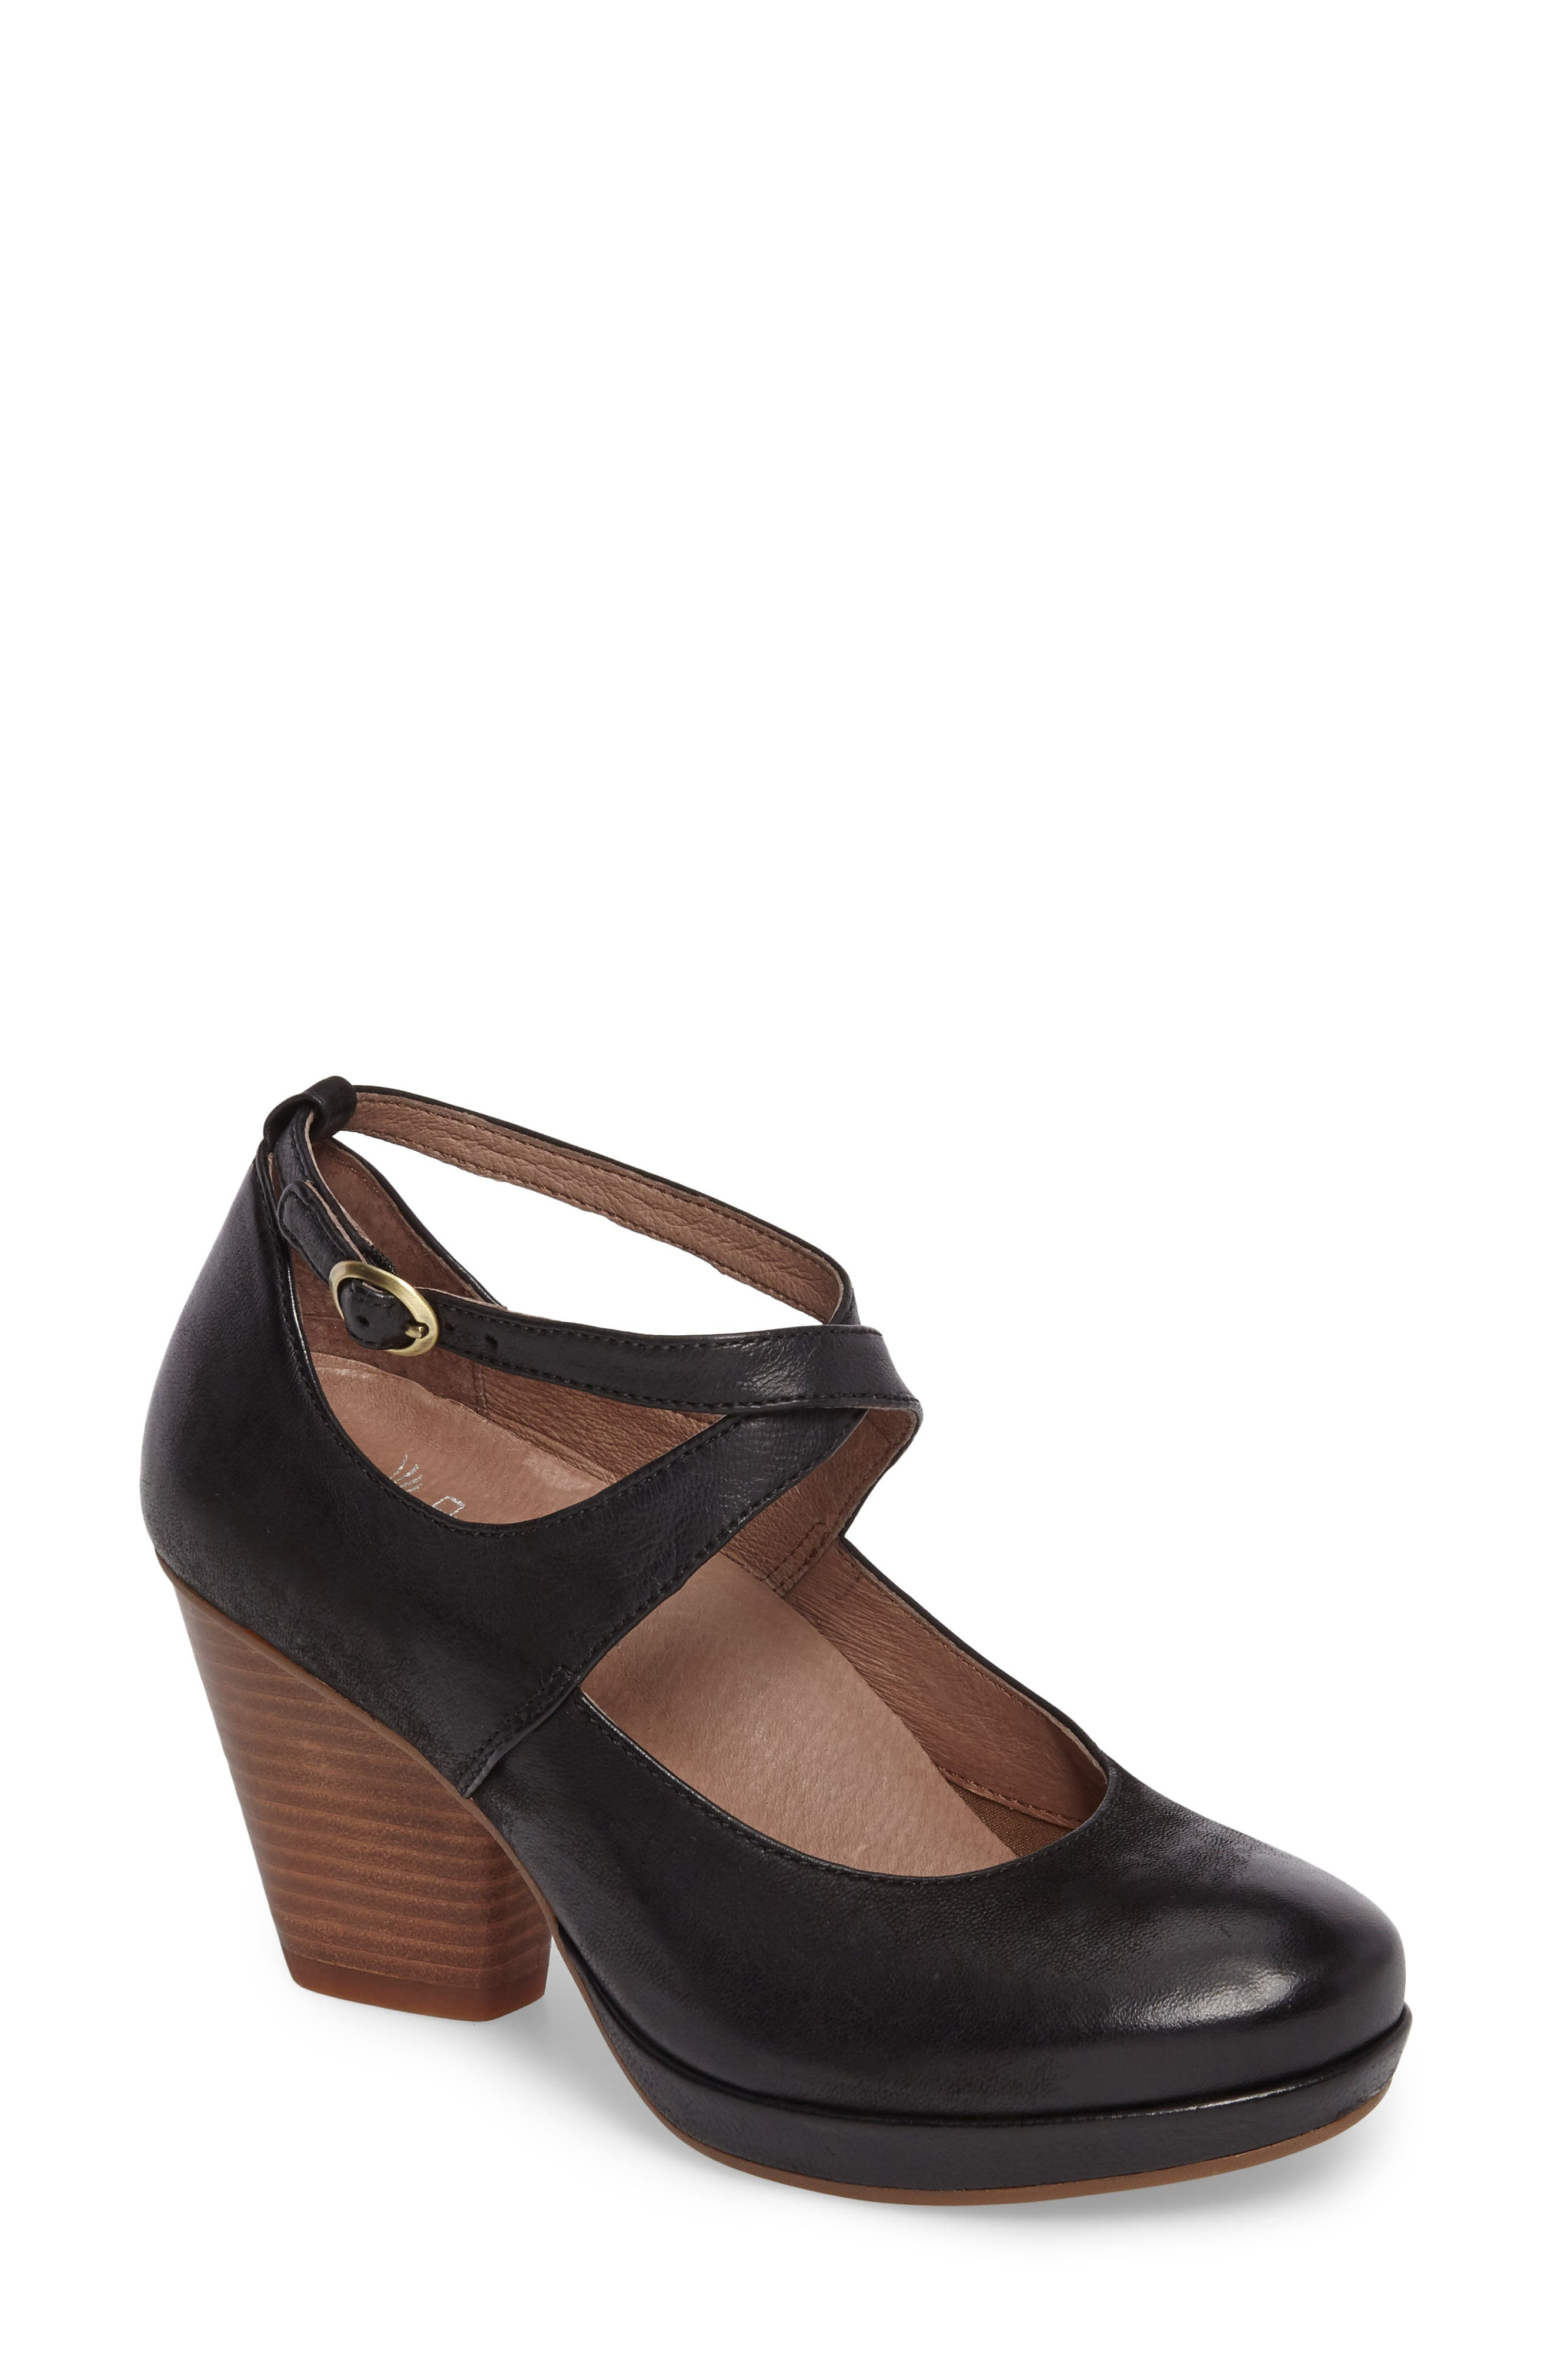 Minette Pump,                         Main,                         color, 001